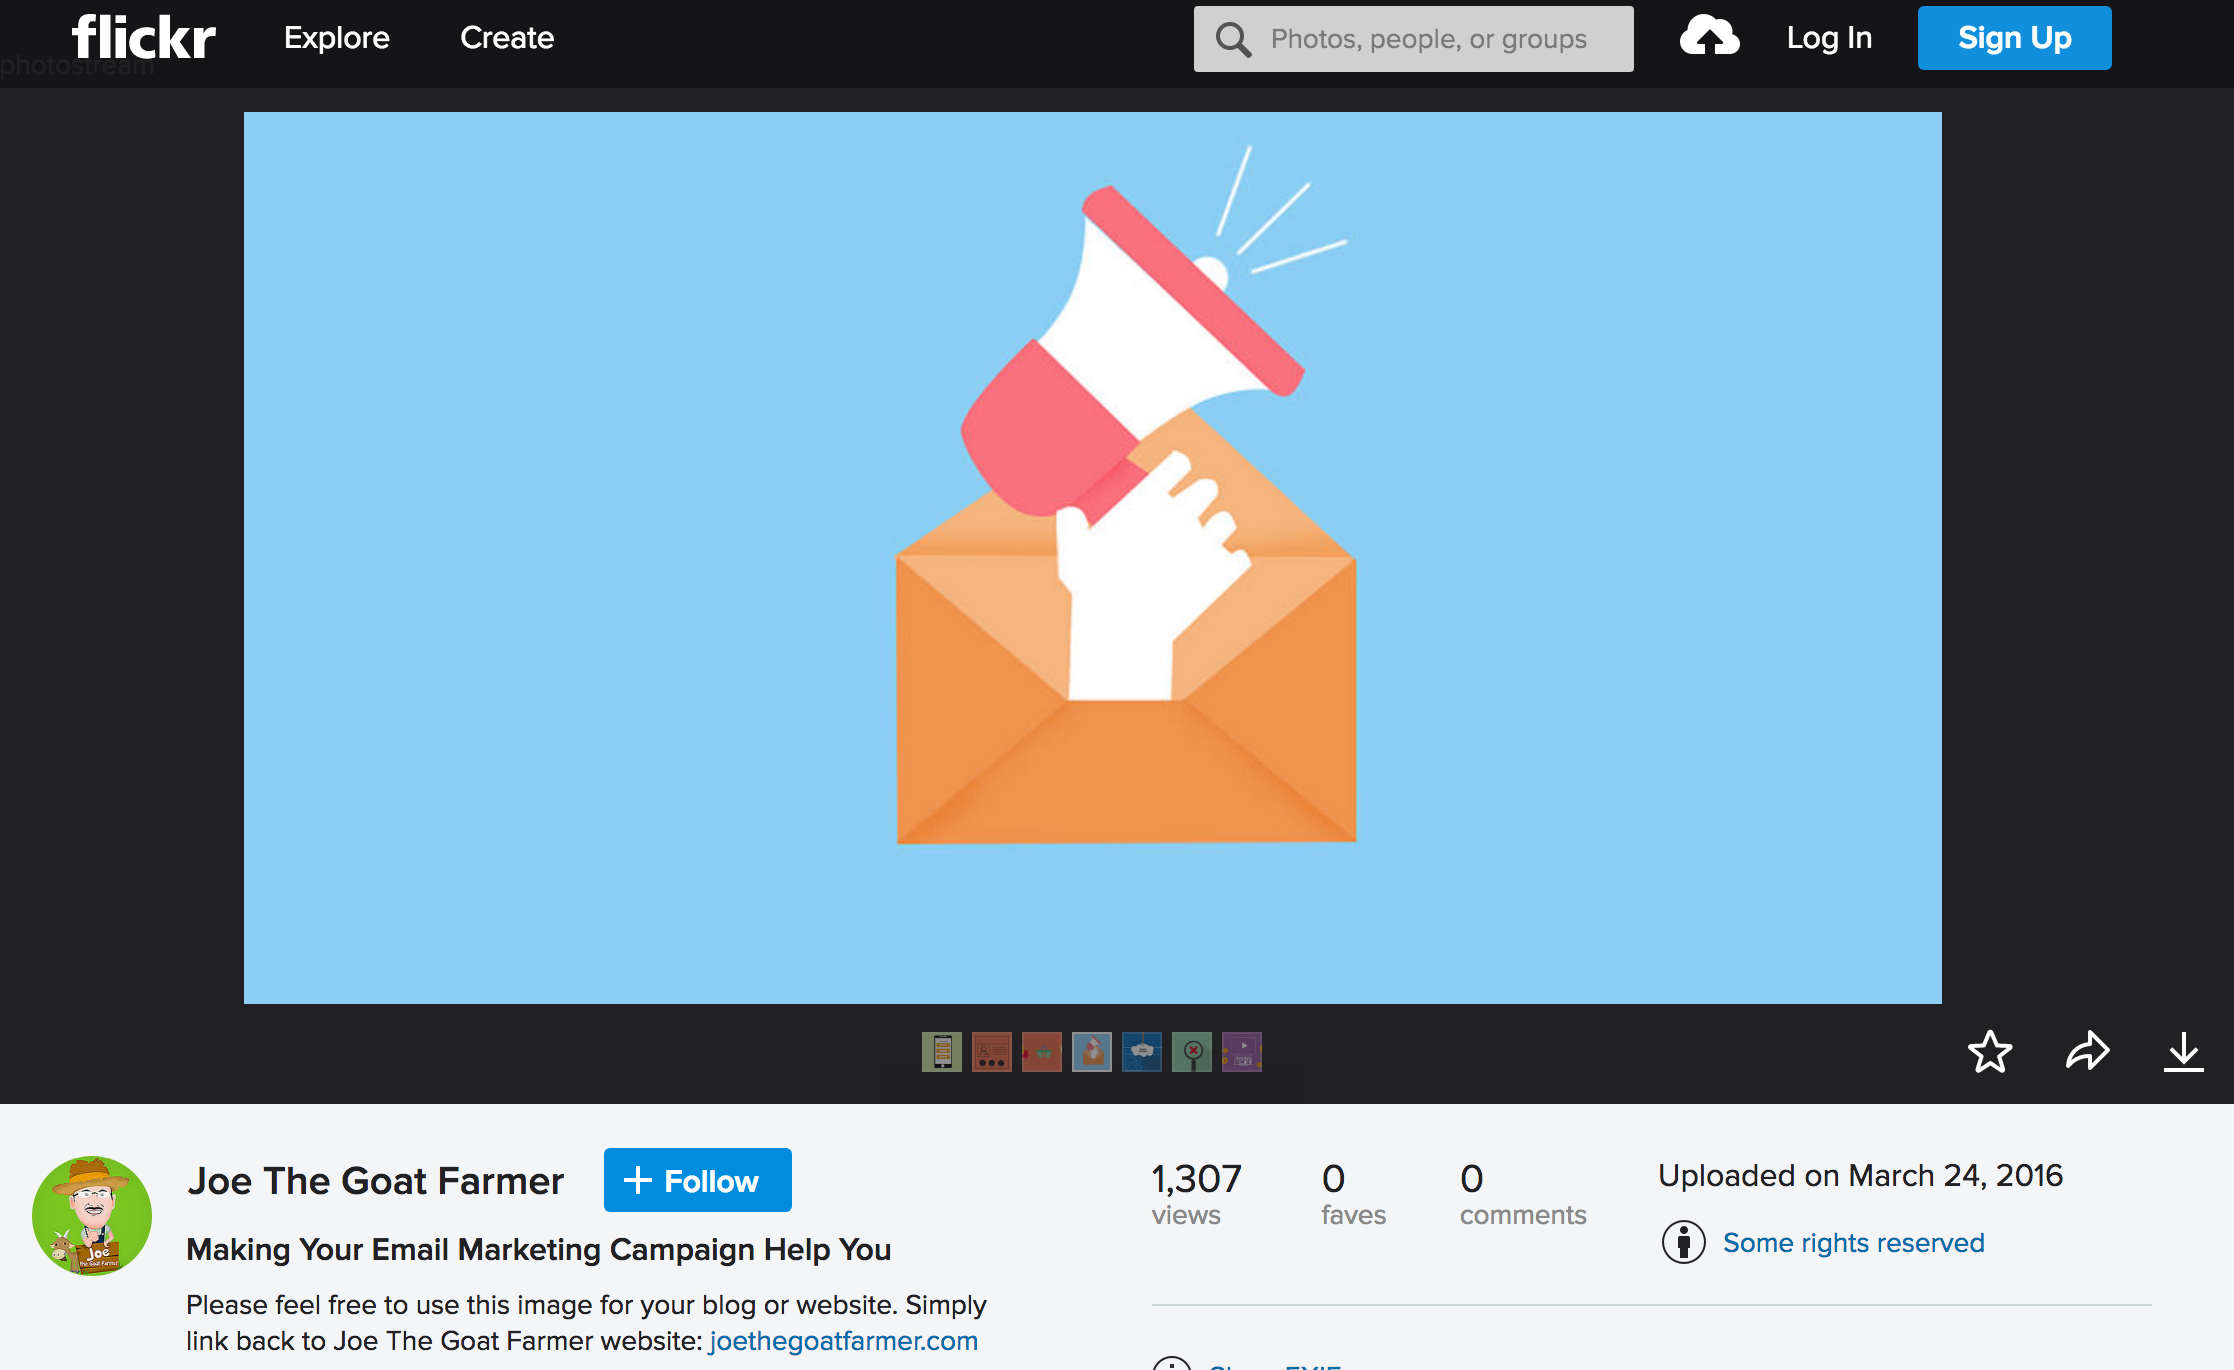 Screenshot of a marketing image uploaded to Flickr